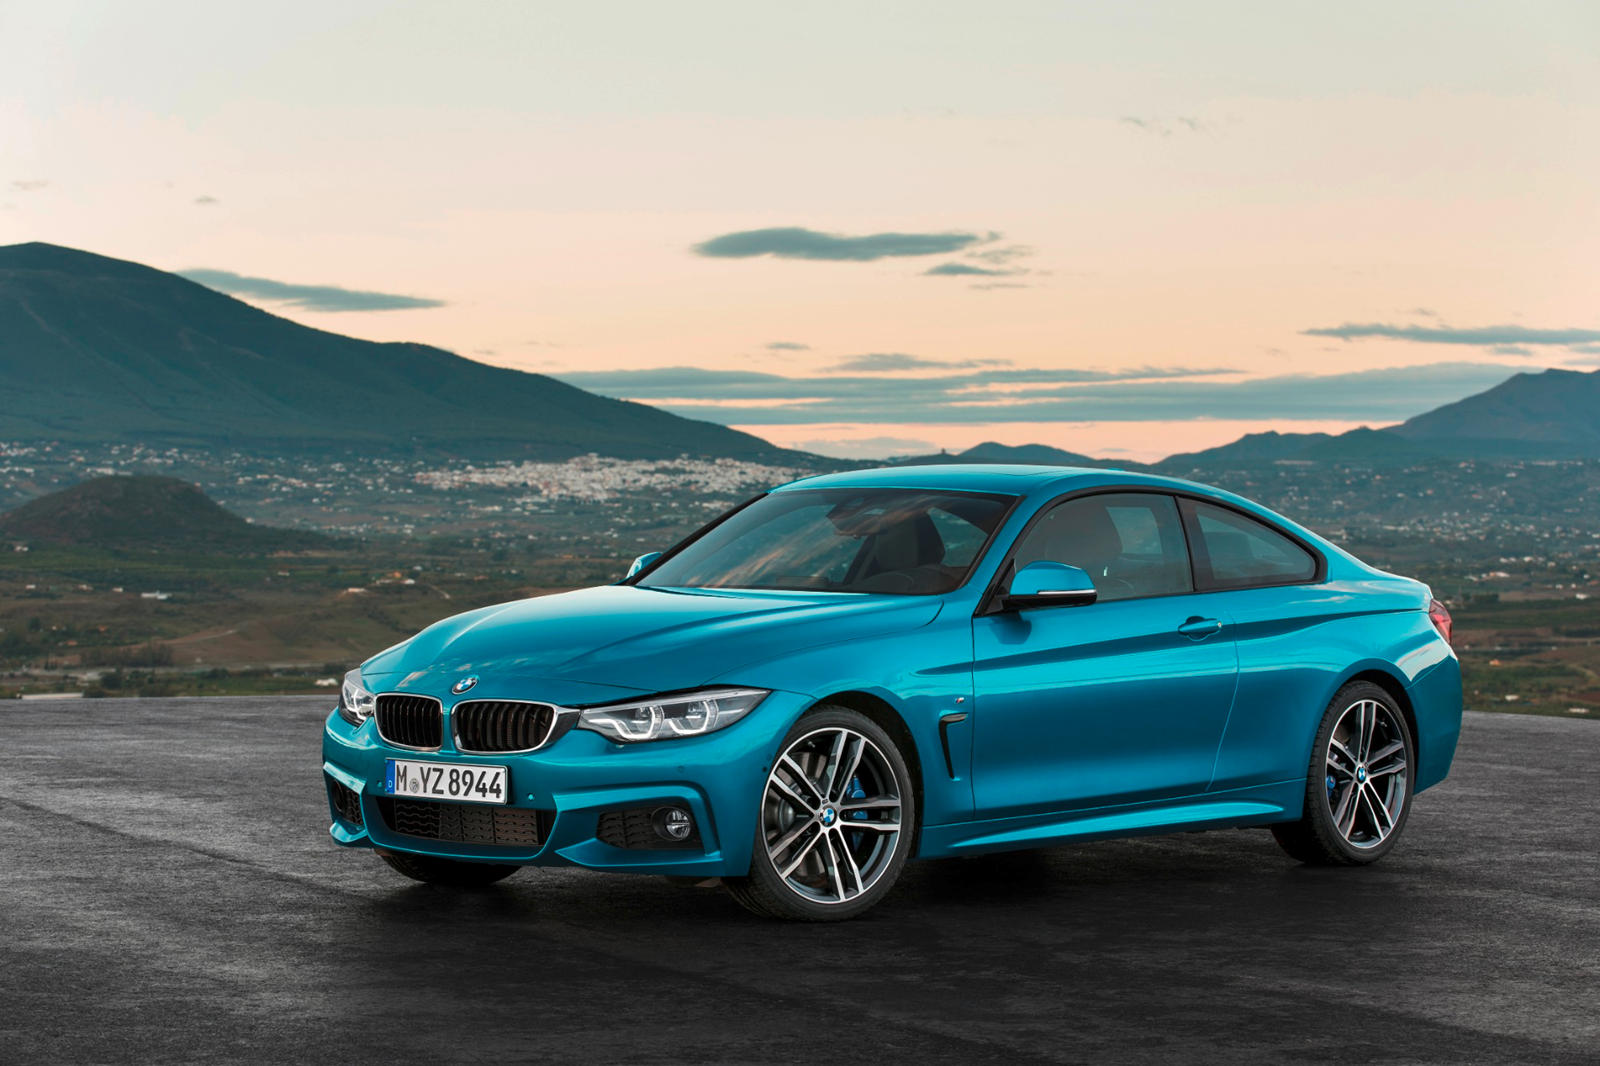 2020 BMW 4 Series Coupe Exterior